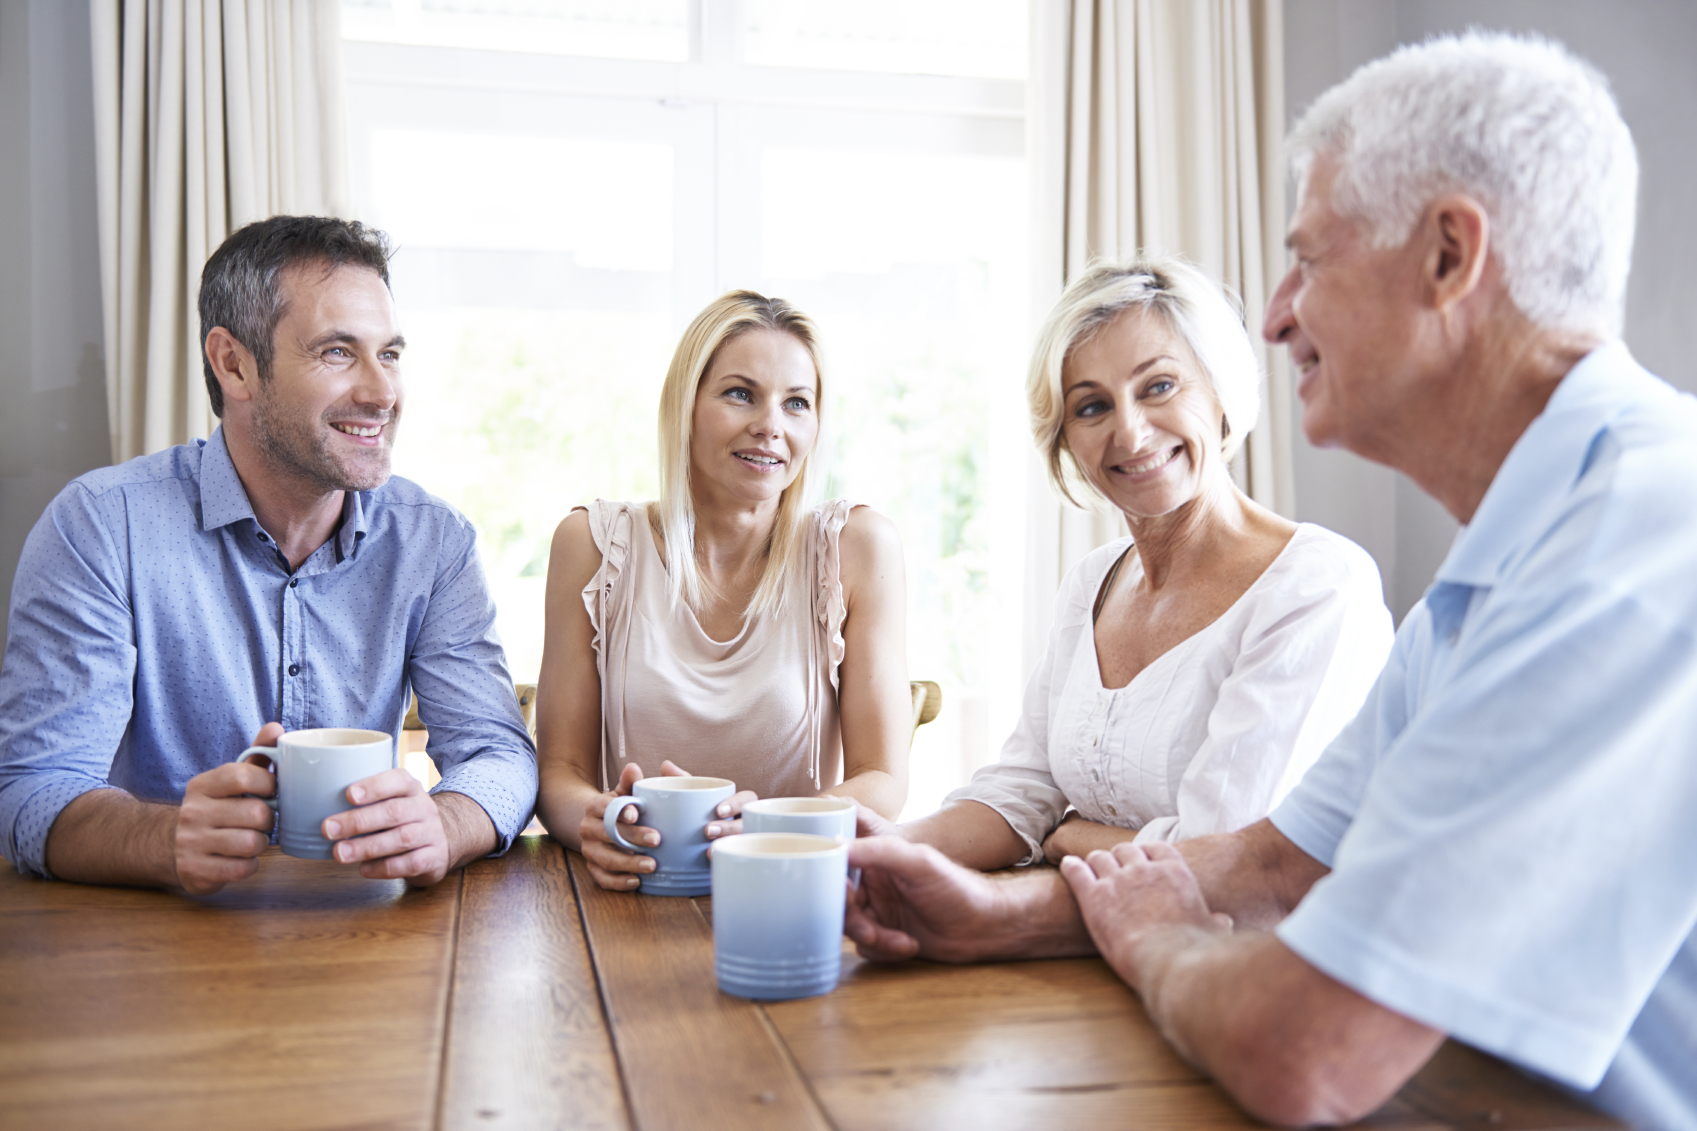 Discussion with aging parents, planning for the future to avoid a crisis.